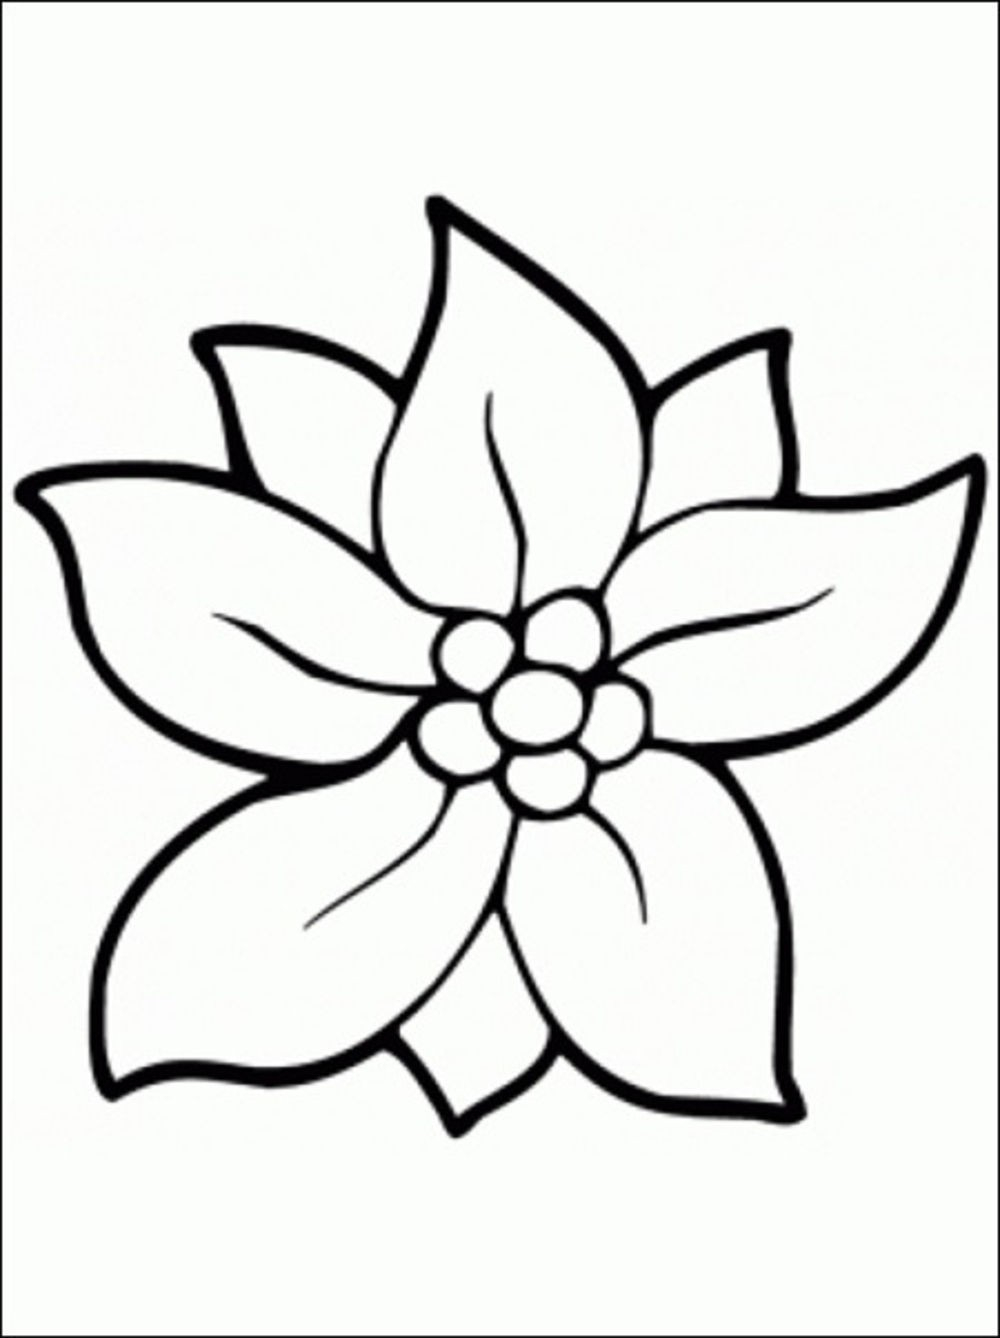 Flowers Coloring Pages Free Printable Coloring Pages Police Officer Coloring For Kids With Cop